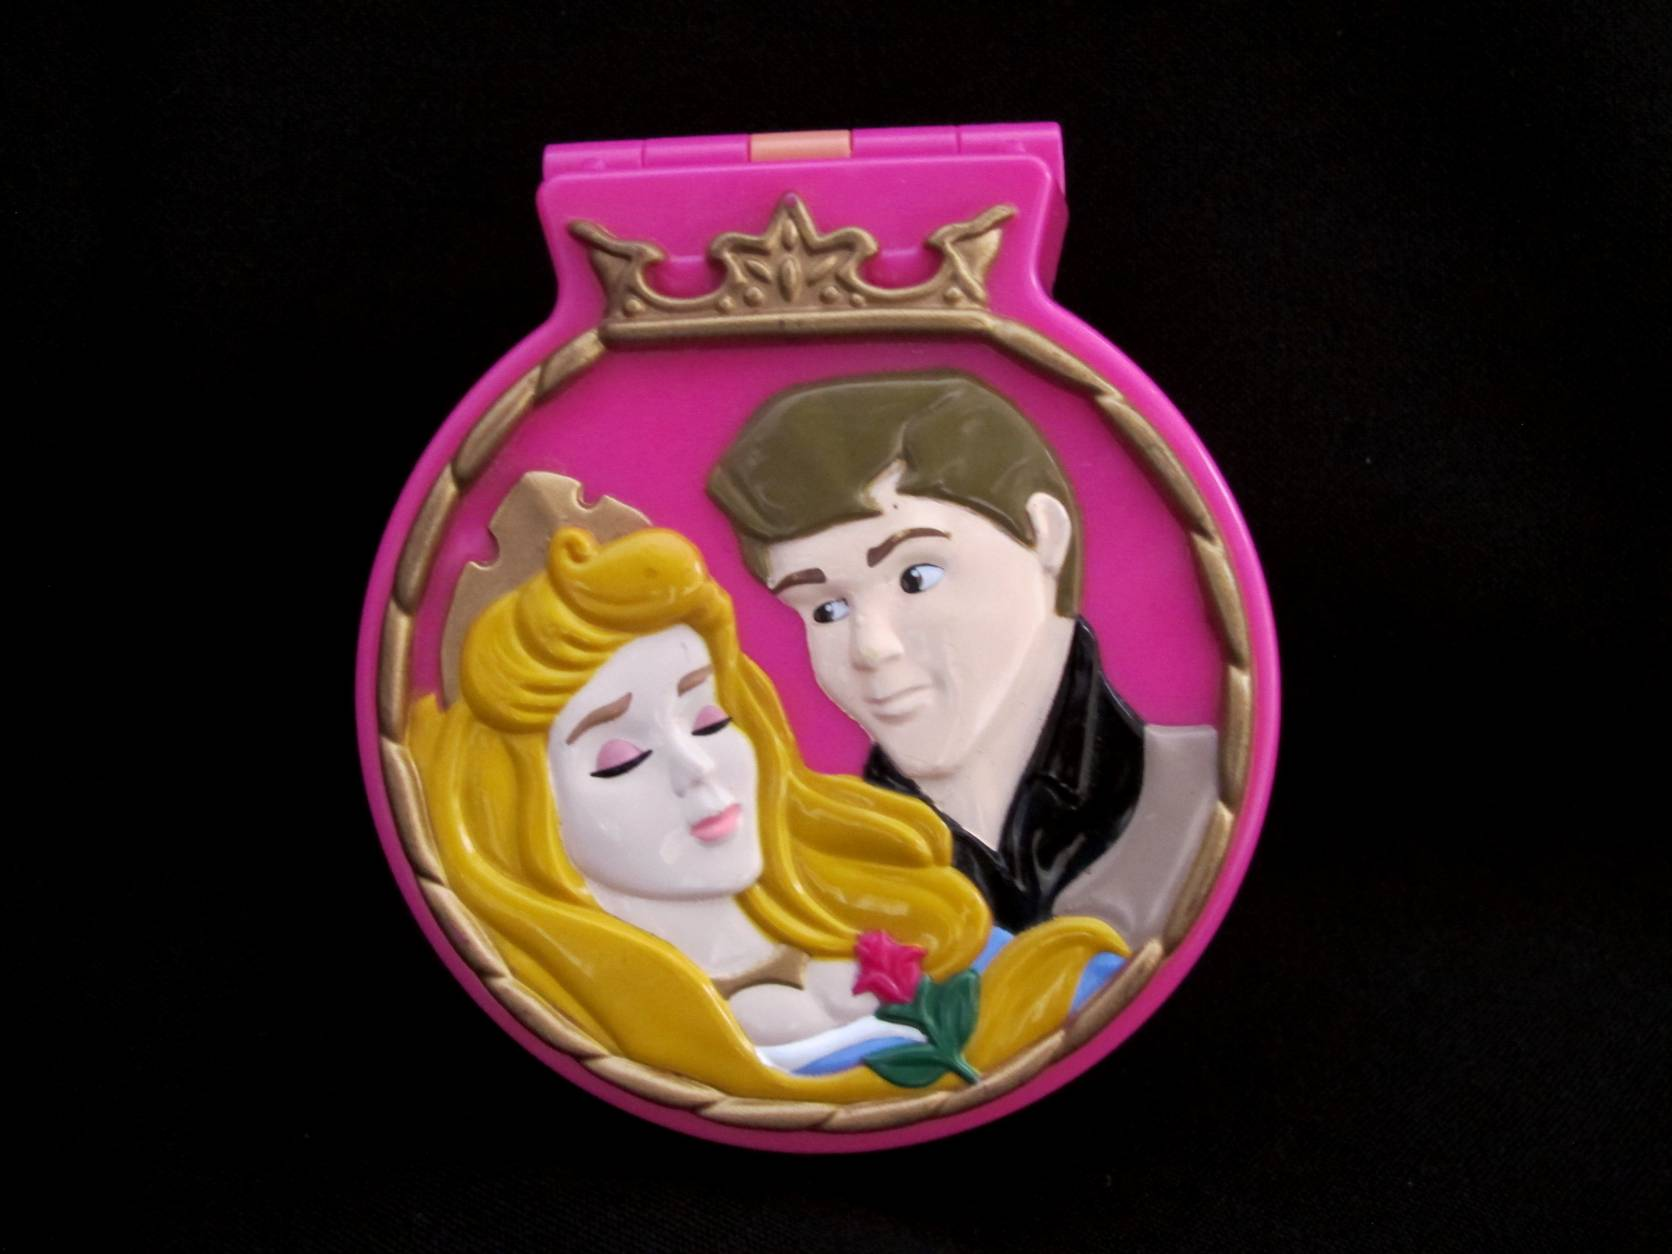 Polly Pocket Disney Sleeping Beauty Playcase